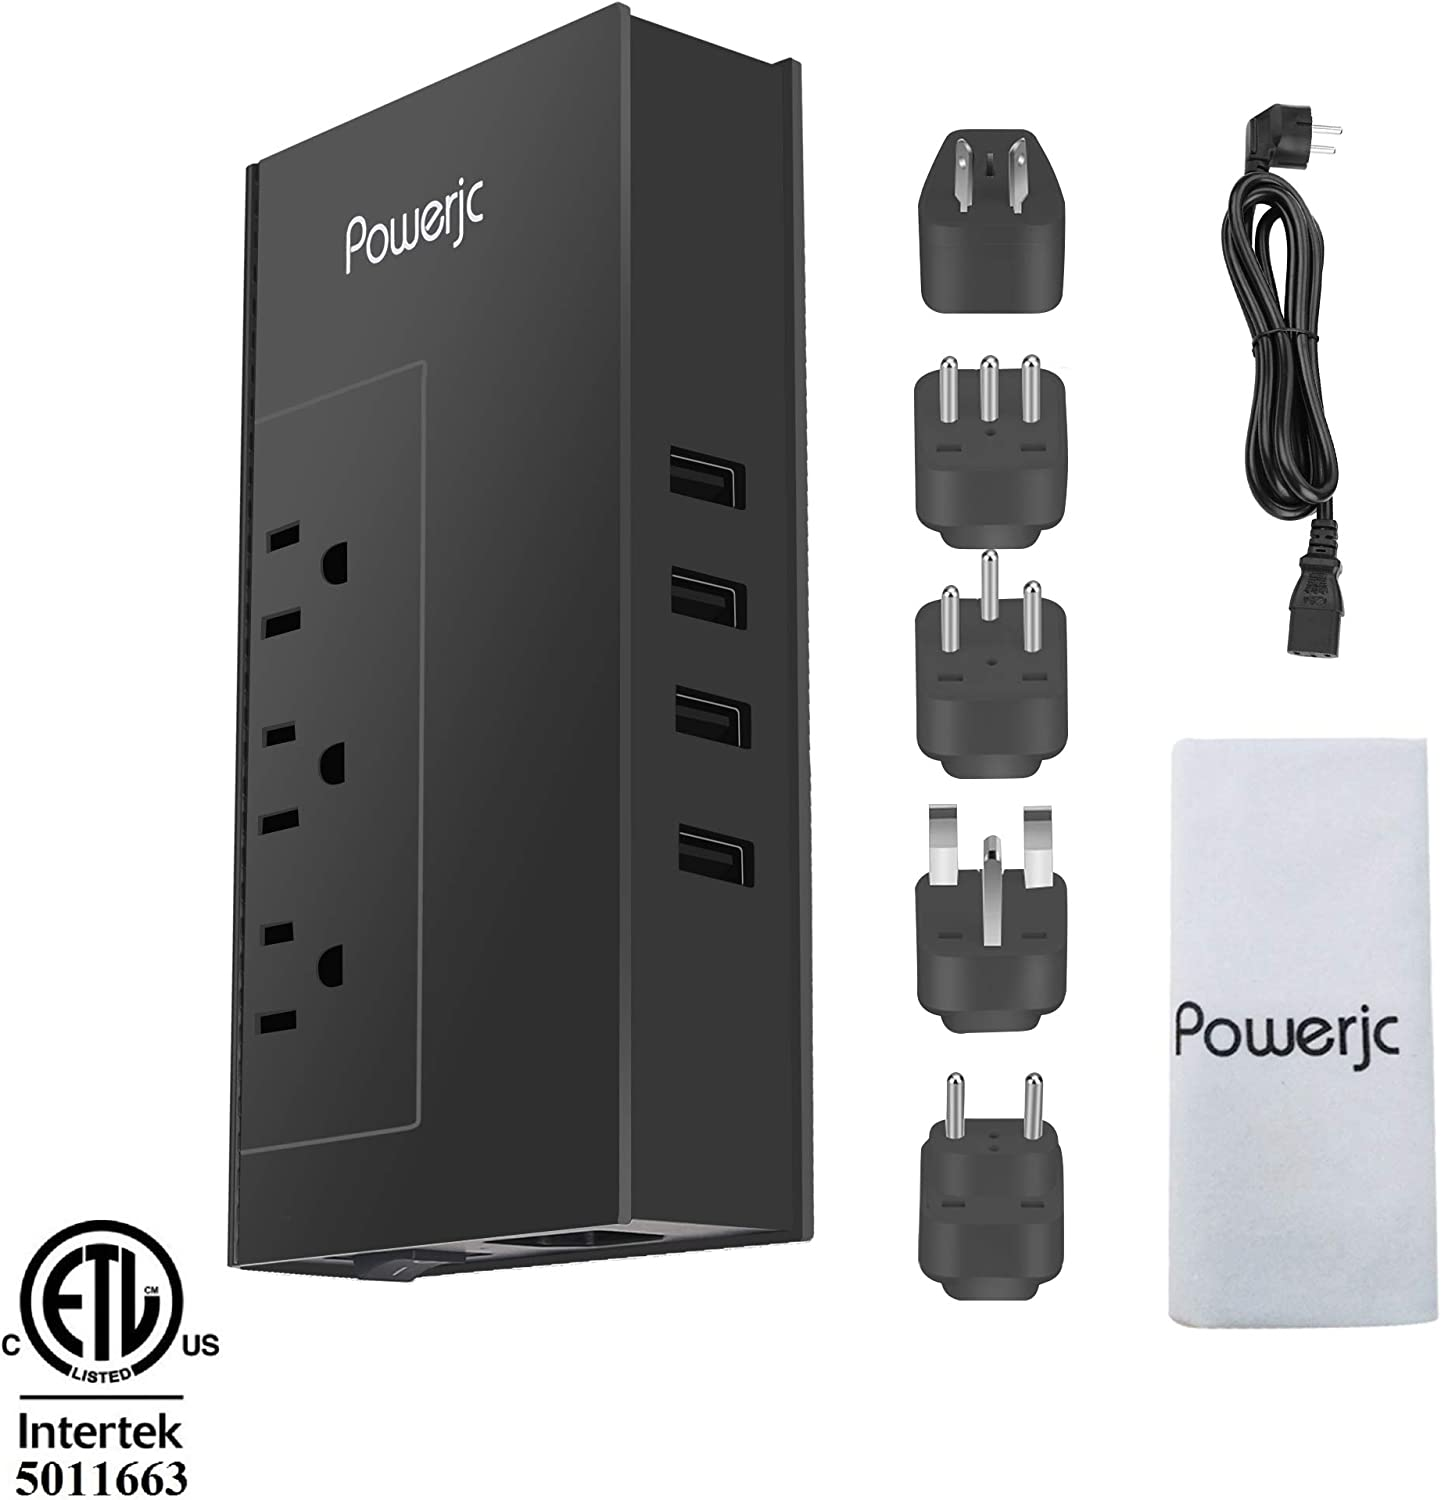 Powerjc Travel Voltage Converter Power Adapter Step Down 220V to 110V Rated Power 1875W with 4 Smart USB Charging Ports ETL for Hot Air Brush and Hair Dryer Black